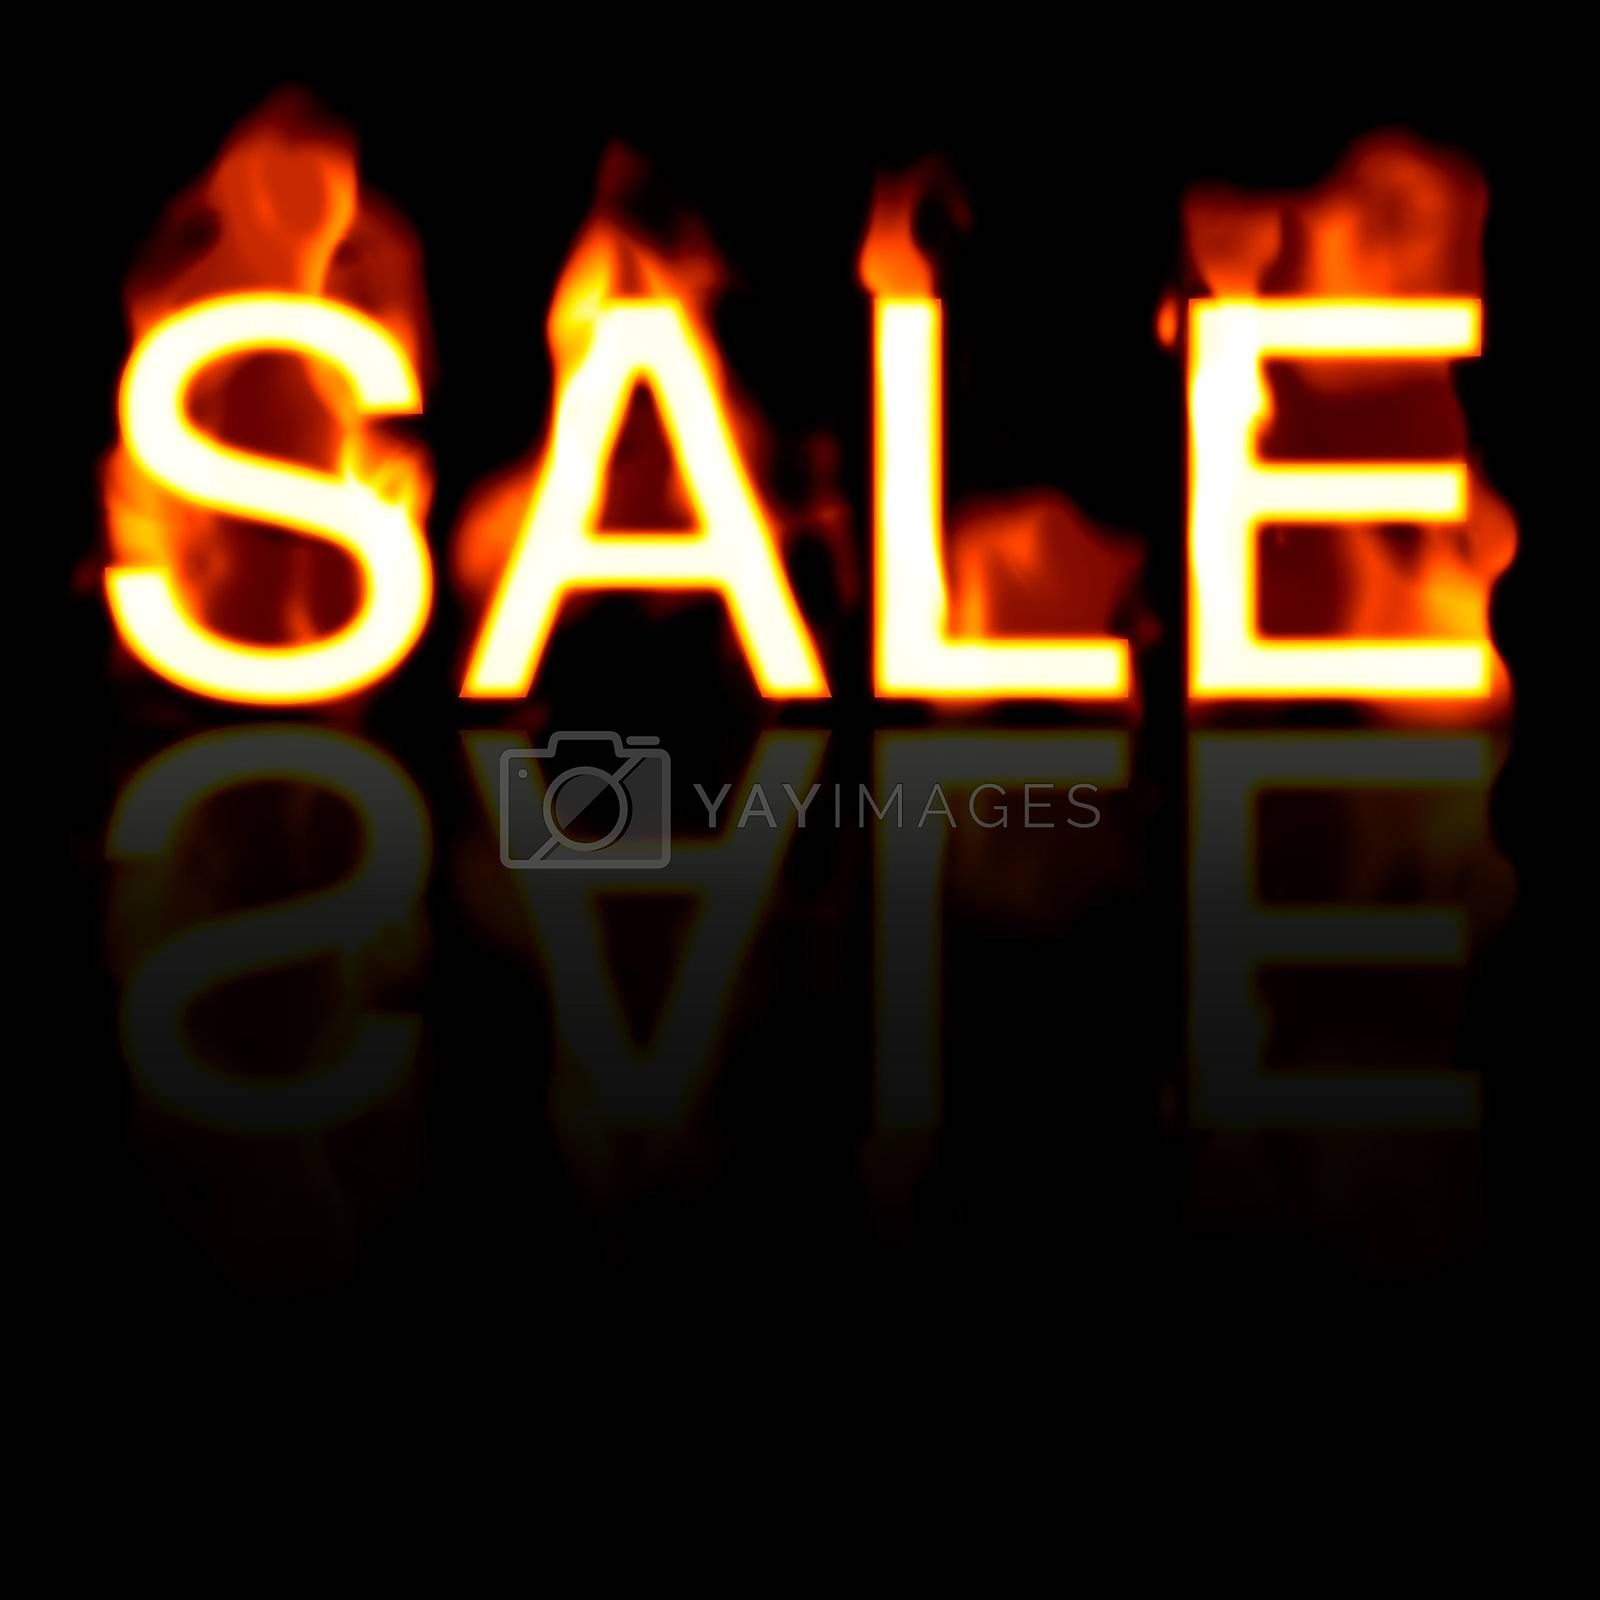 Retail SALE artwork with a fire effect and reflection.  Great for signs posters web marketing and more.